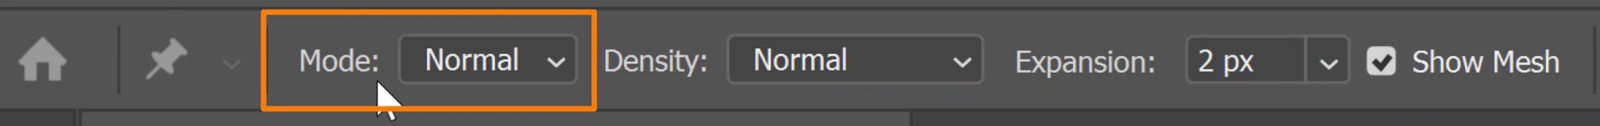 Set the Mode to Normal